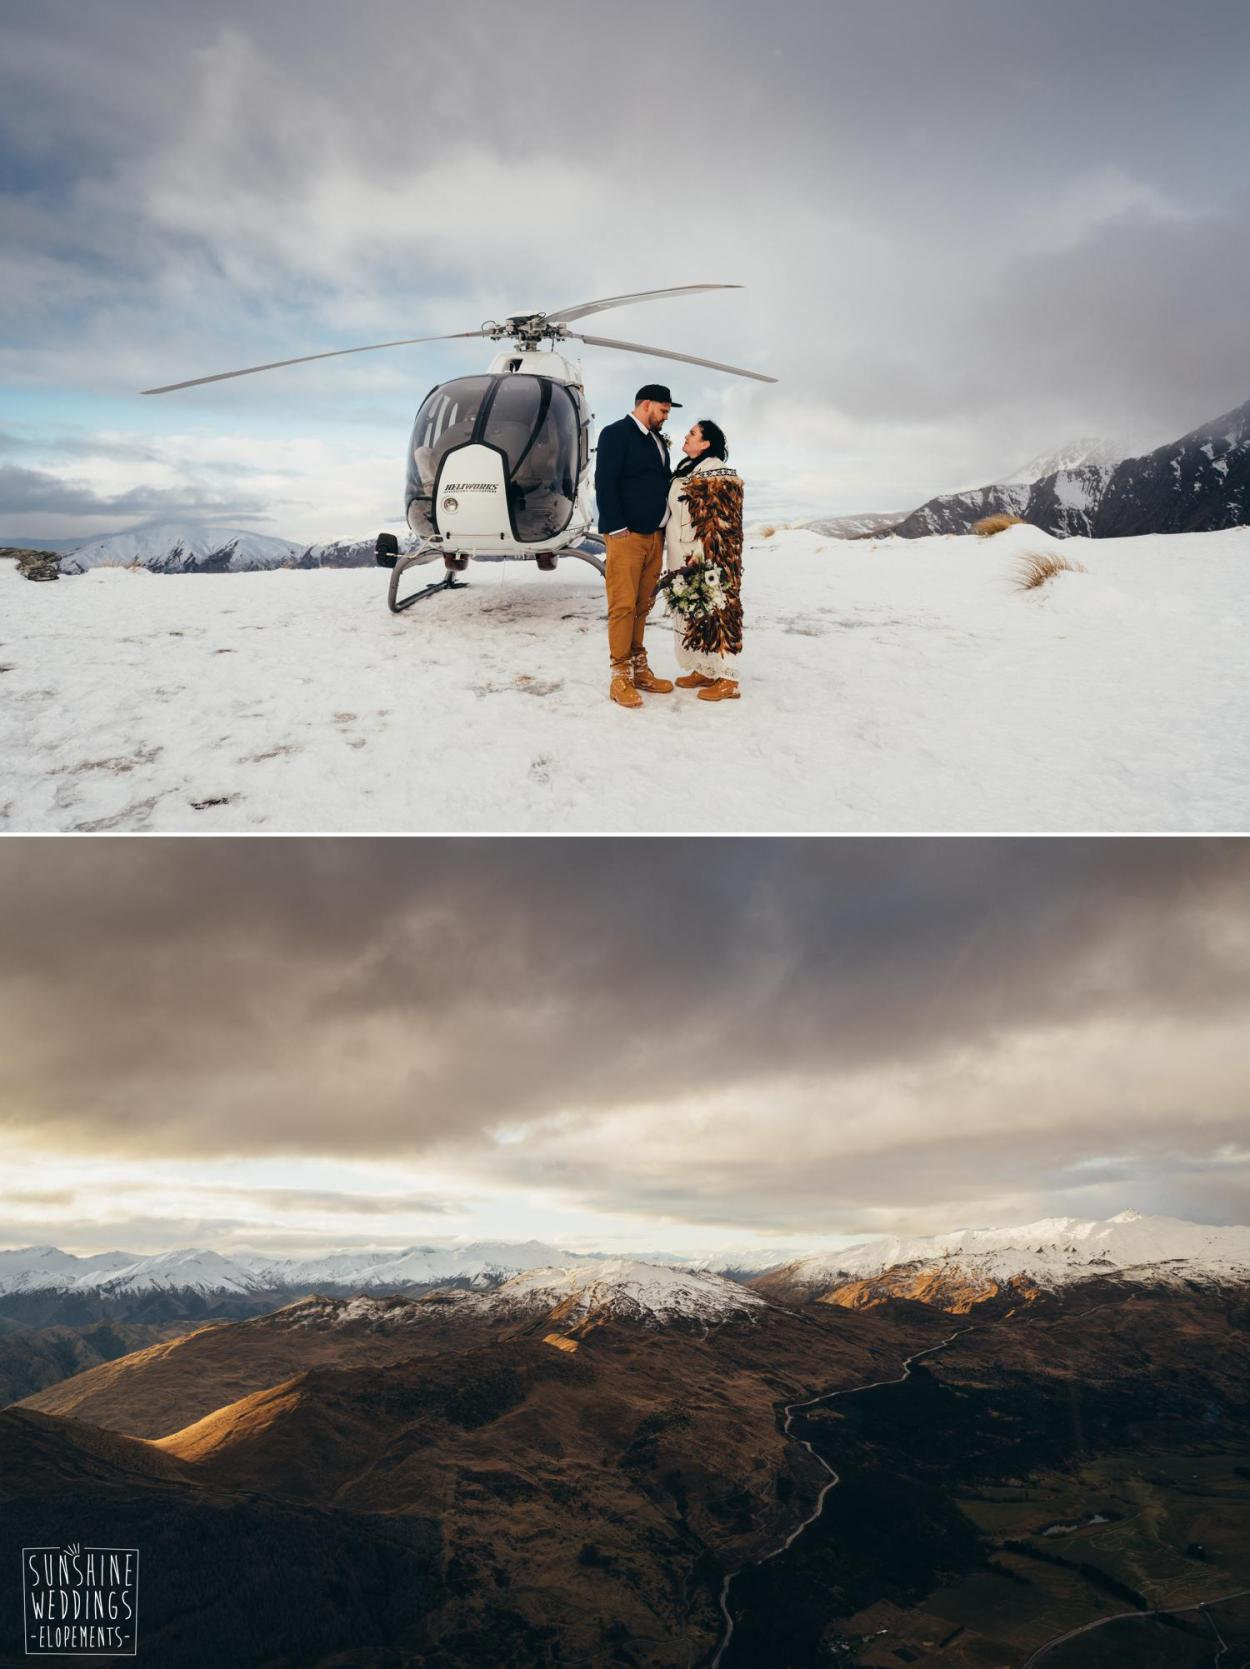 Heliworks winter wedding